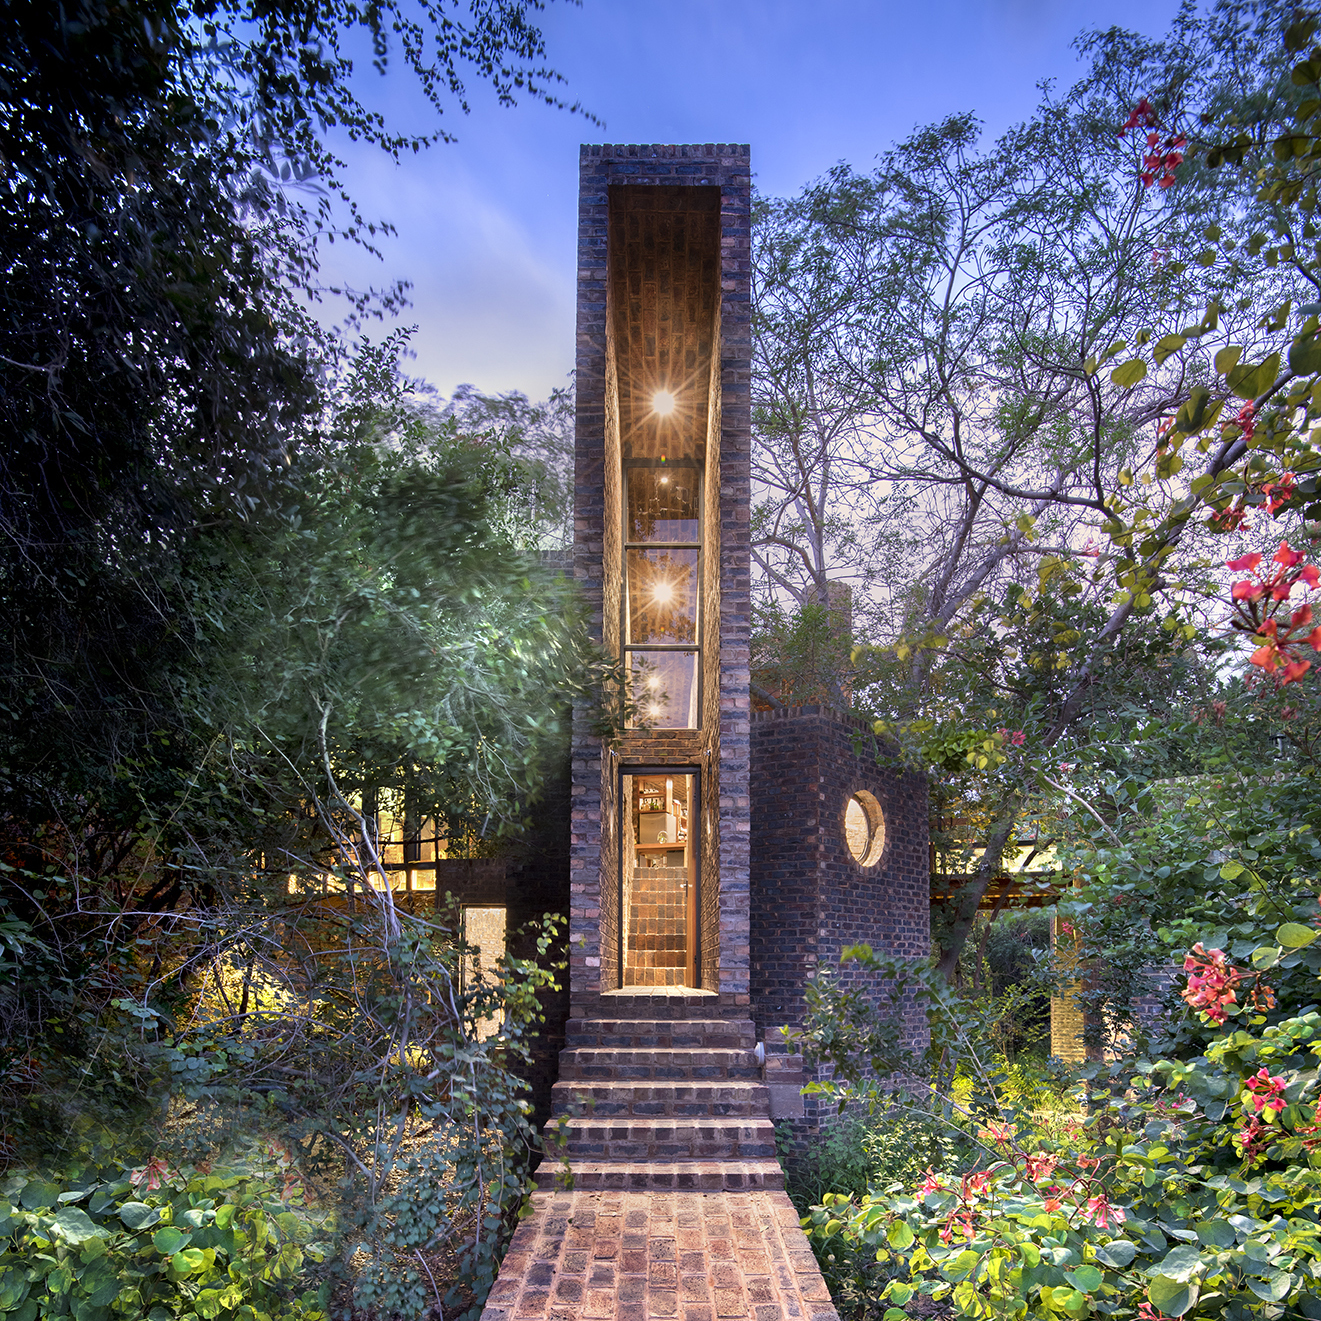 House of the Big Arch / Frankie Pappas